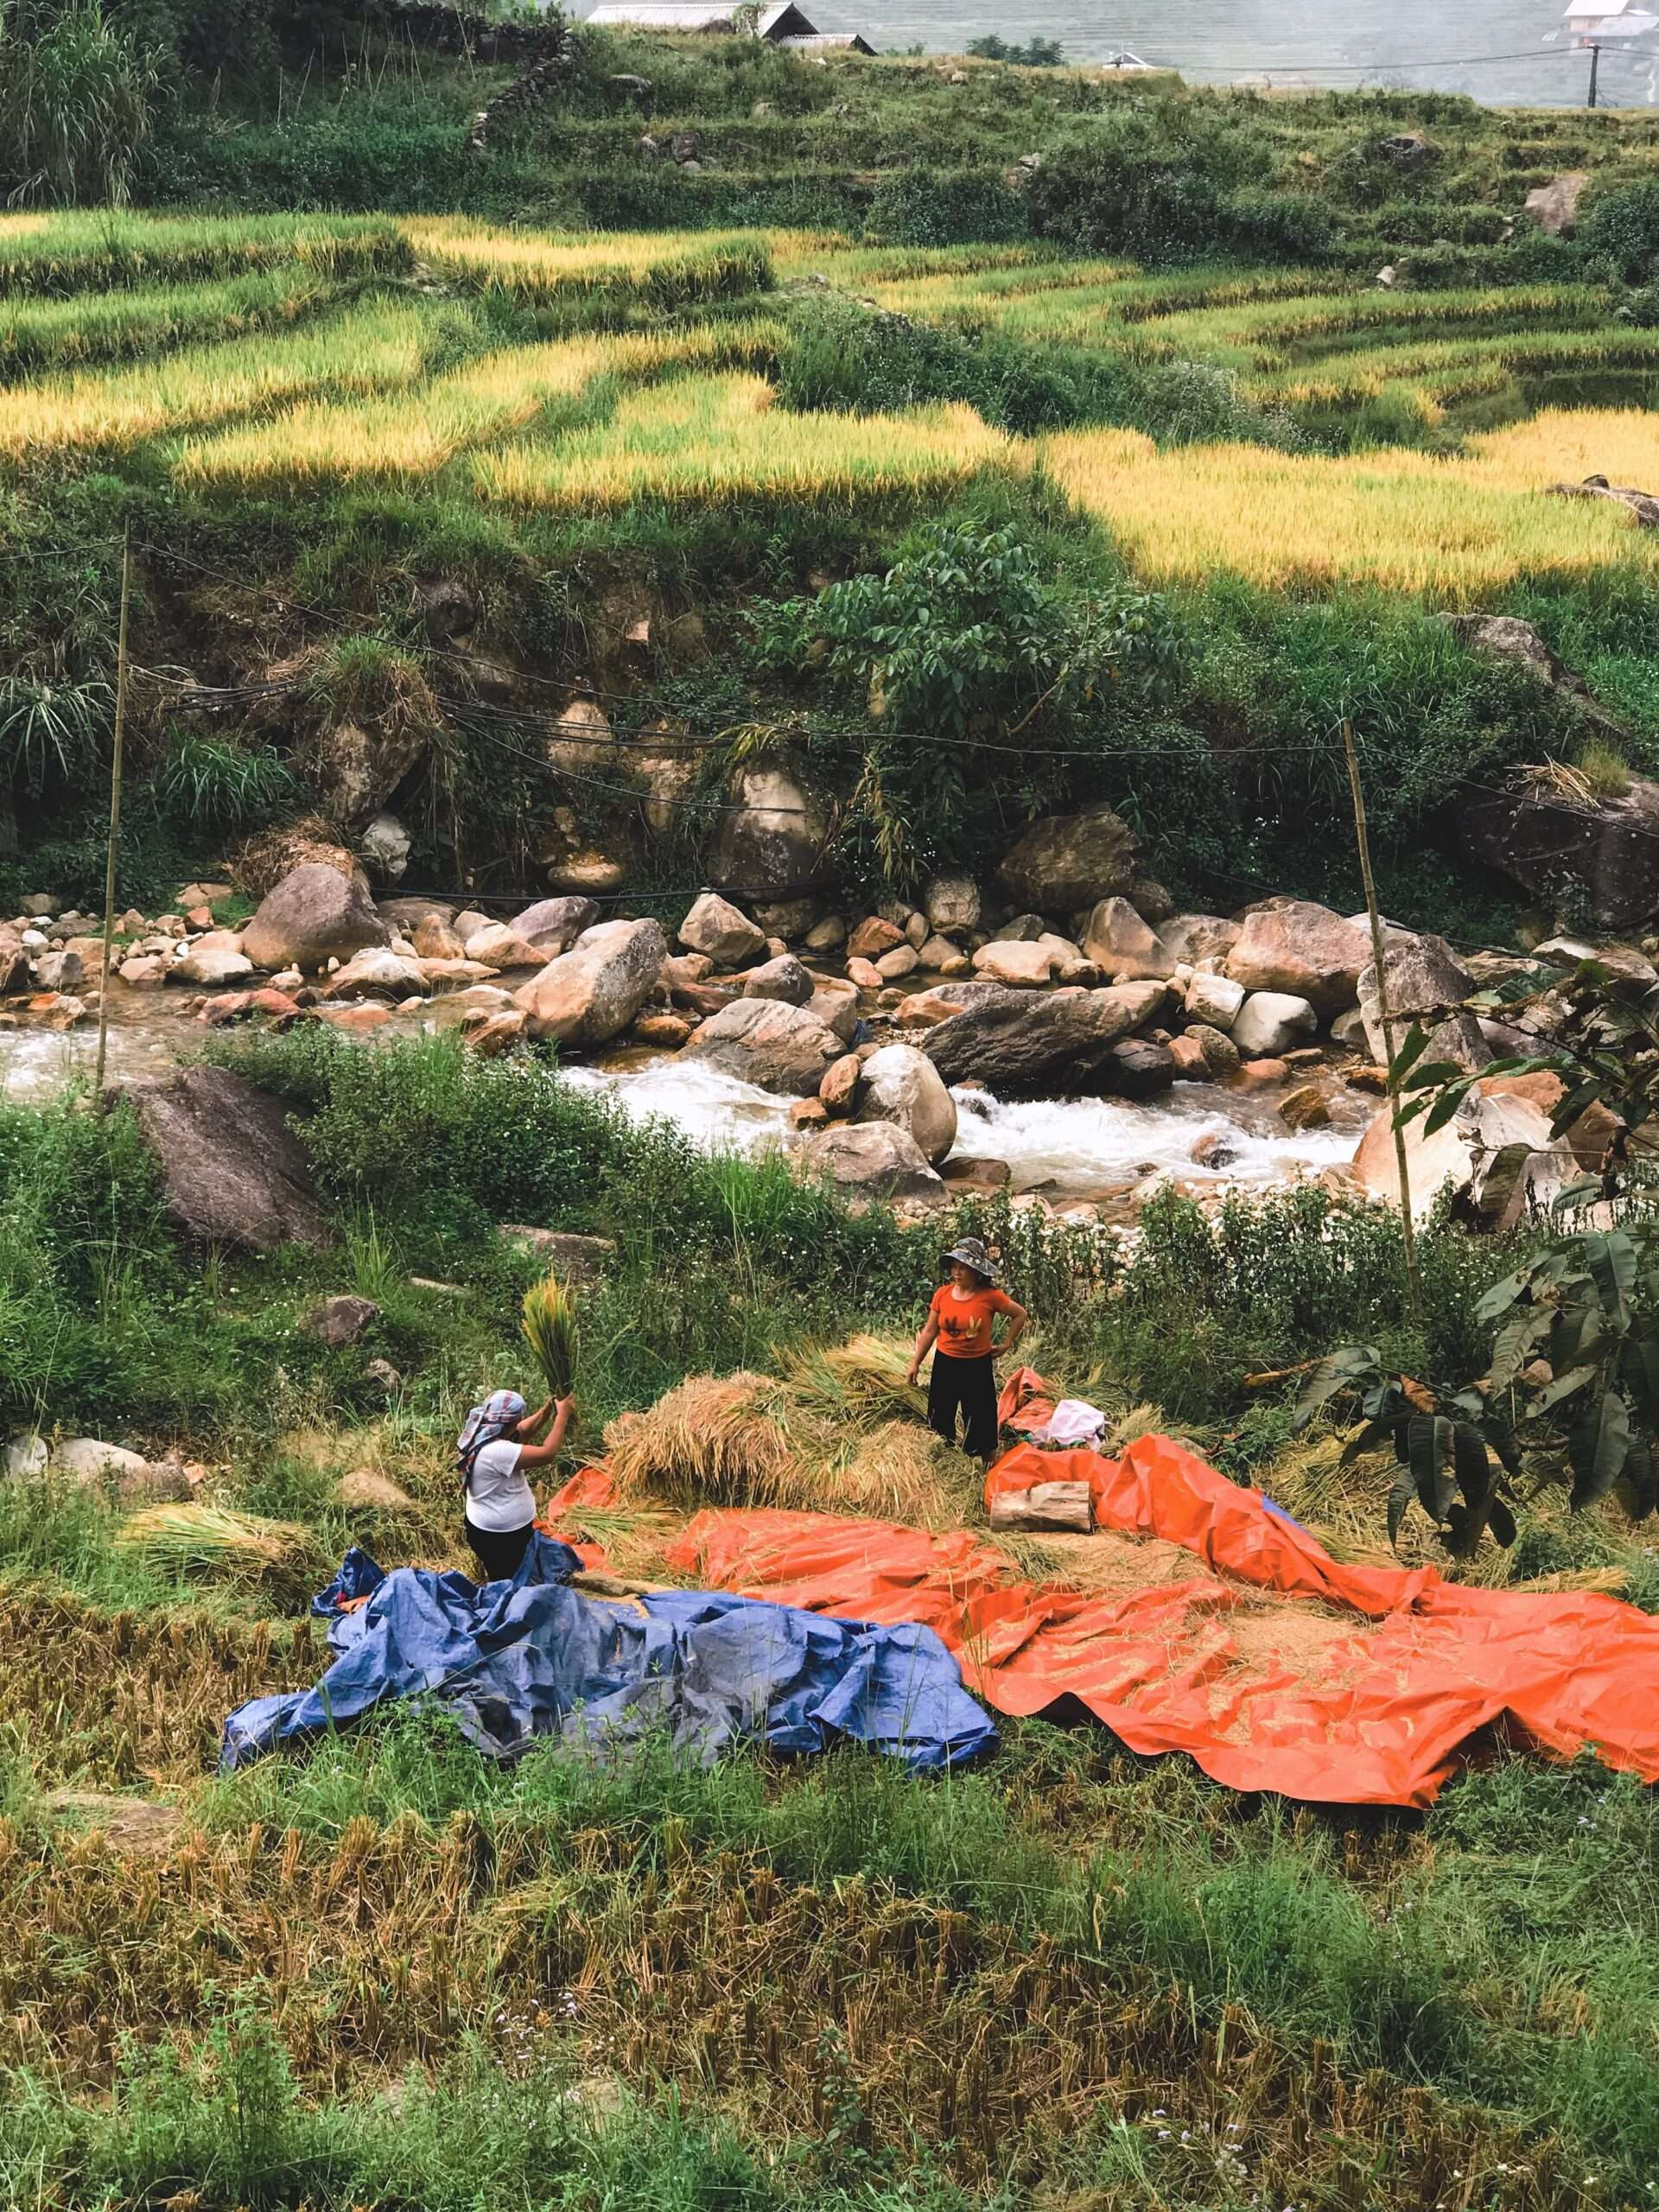 two men dry rice in the sun, a common sight when trekking in Sapa